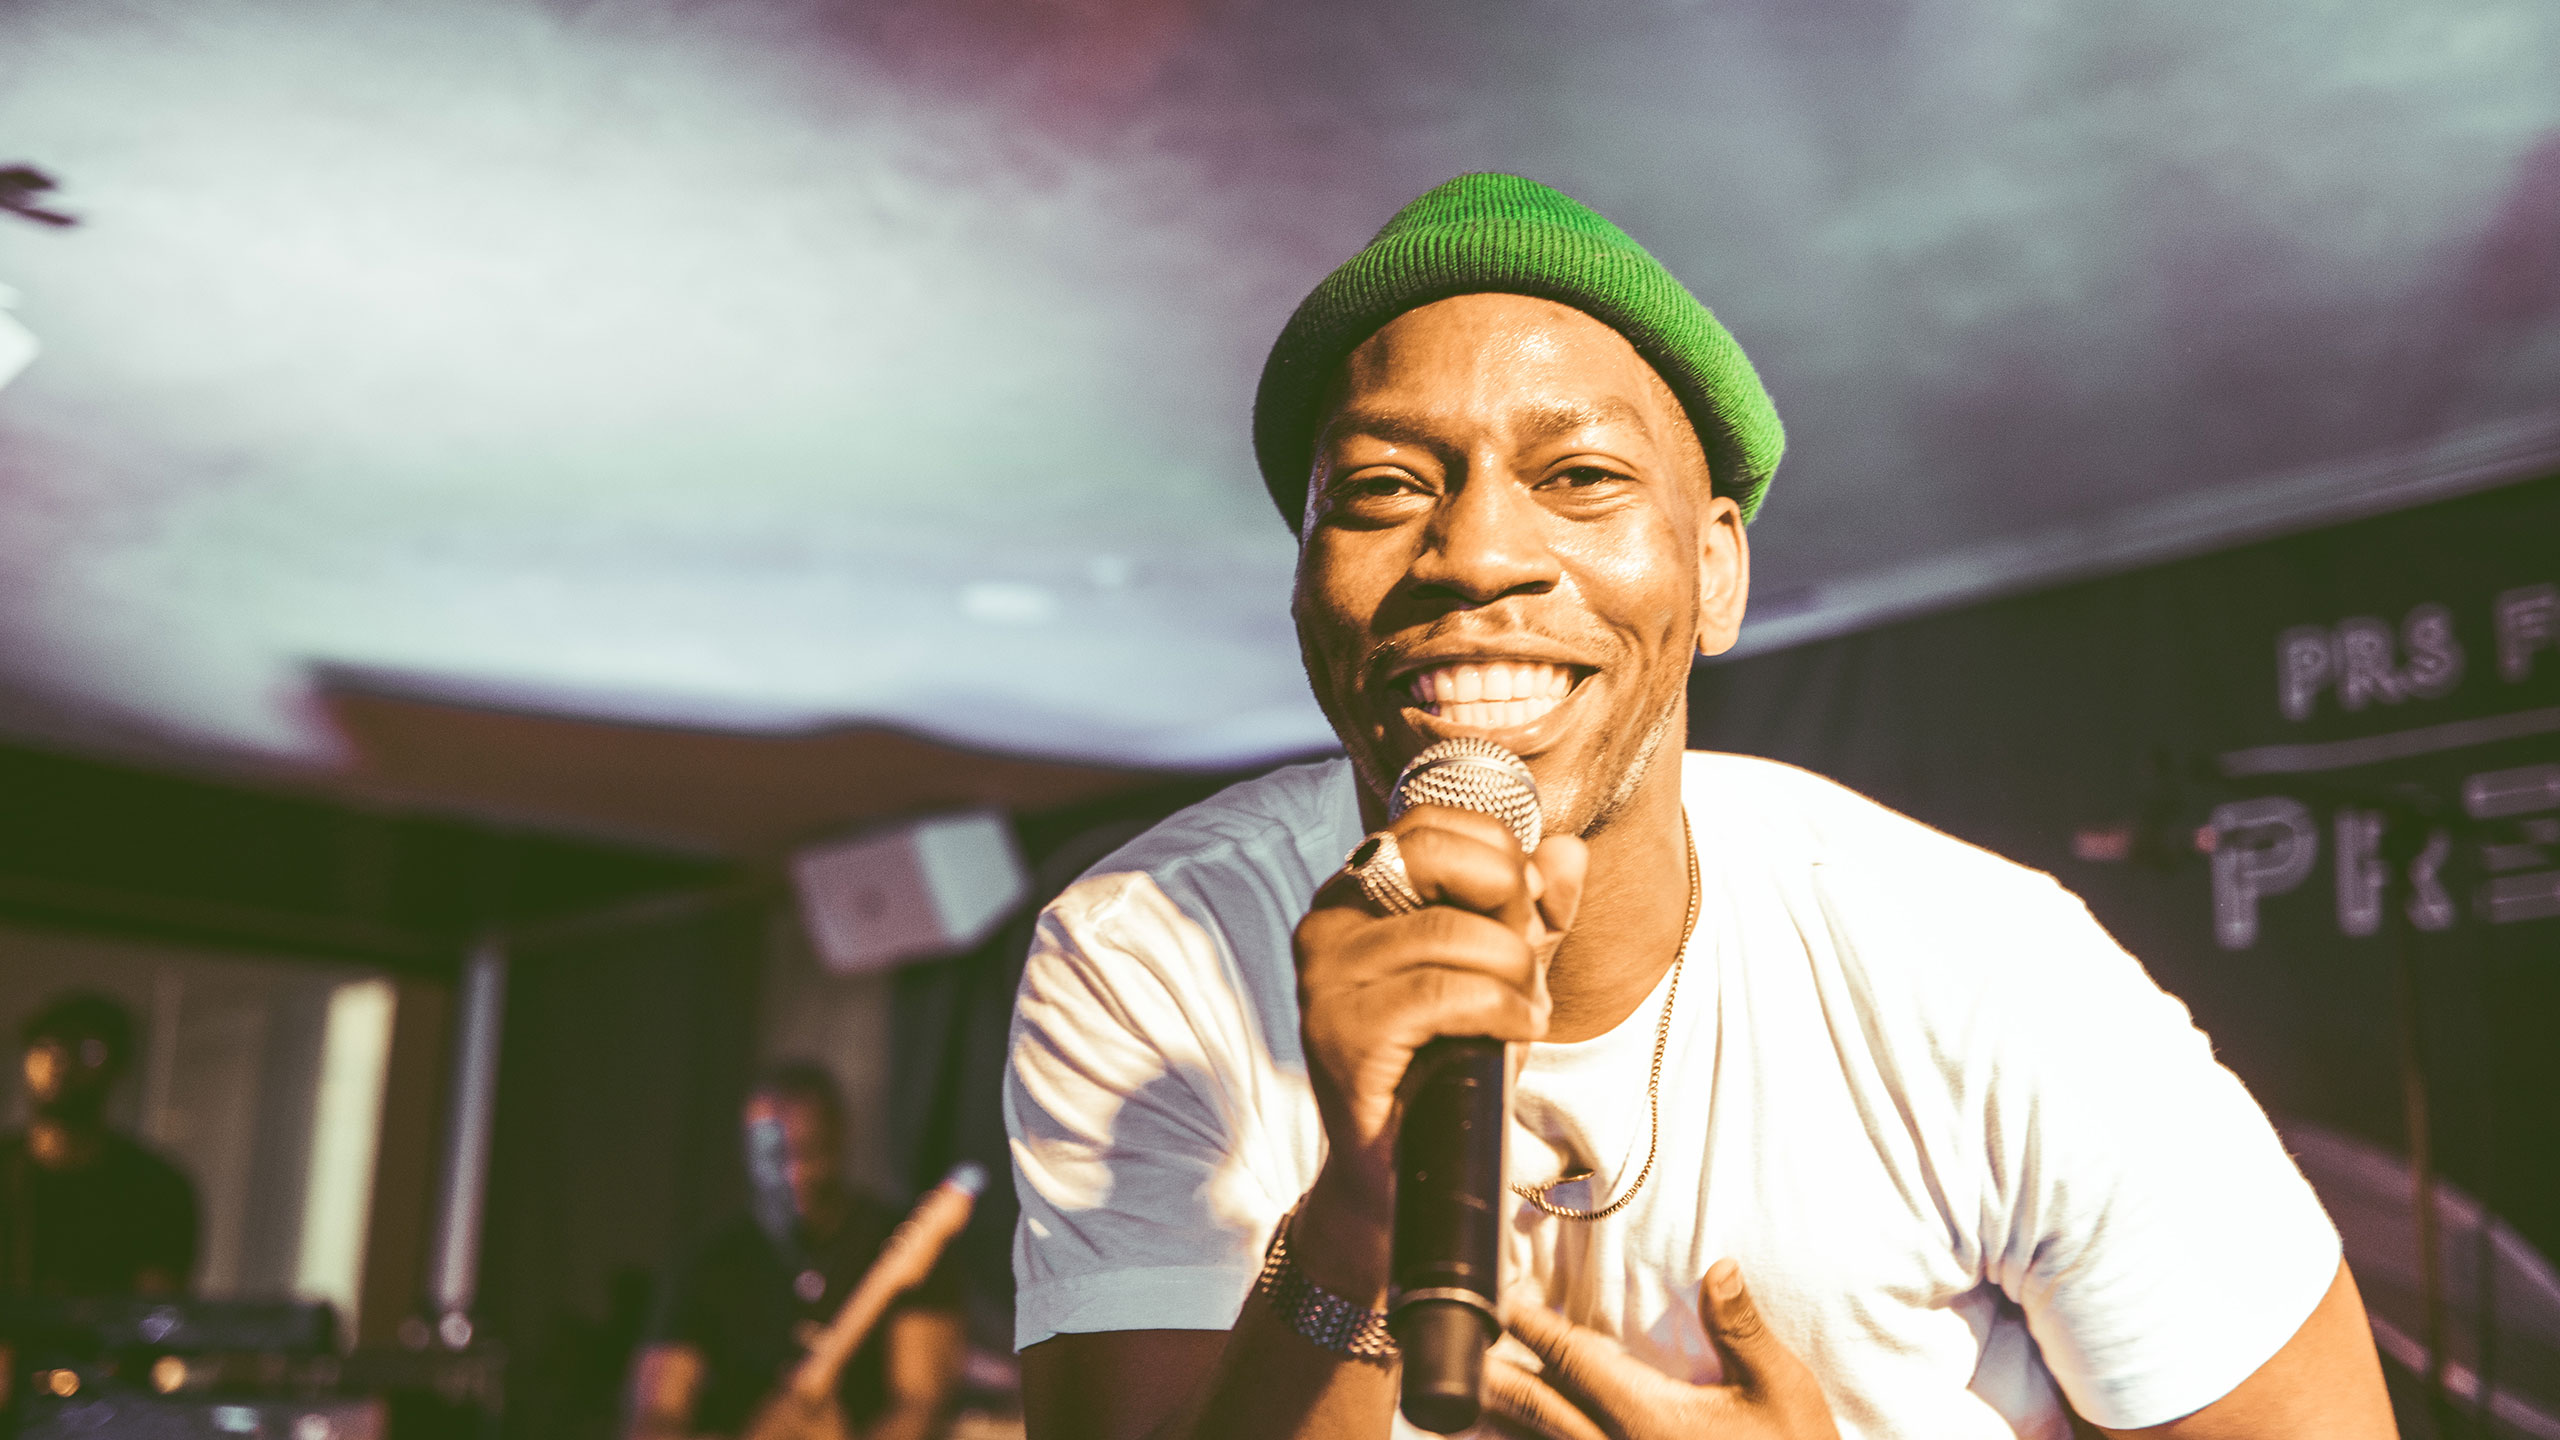 Tiggs Da Author smiles into the camera with his microphone at PRS Presents, wearing a green hat and white t shirt